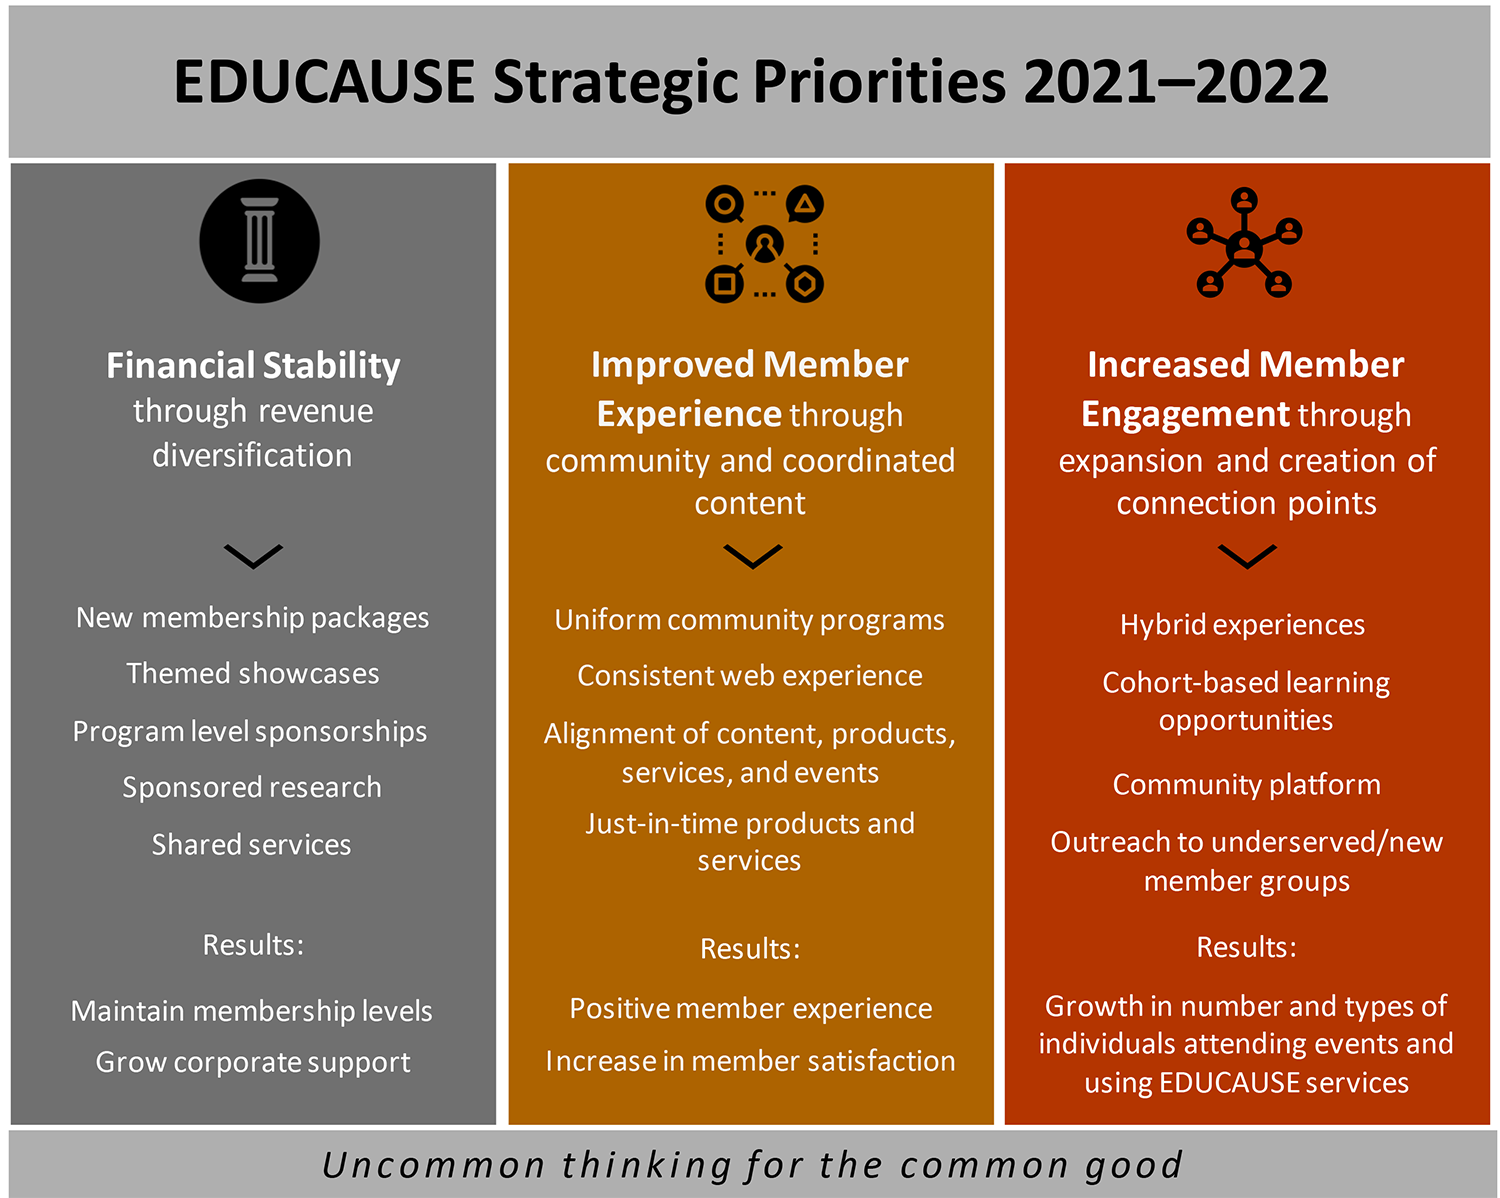 Title: EDUCAUSE Strategic Priorities 2021–2022 | Uncommon thinking for the common good.  Financial Stability through revenue diversification: New membership packages; Themed showcases; Program level sponsorships; Sponsored research; Shared services. Results: Maintain membership levels; Grow corporate support.  Improved Member Experience through community and coordinated content: Uniform community programs; Consistent web experience; Alignment of content, products, services, and events; Just-in-time products and services. Results: Positive member experience; Increase in member satisfaction. Increased Member Engagement through expansion and creation of connection points: Hybrid experiences; Cohort-based learning opportunities; Community platform; Outreach to underserved/new member groups. Results: Growth in number and types of individuals attending events and using EDUCAUSE services.